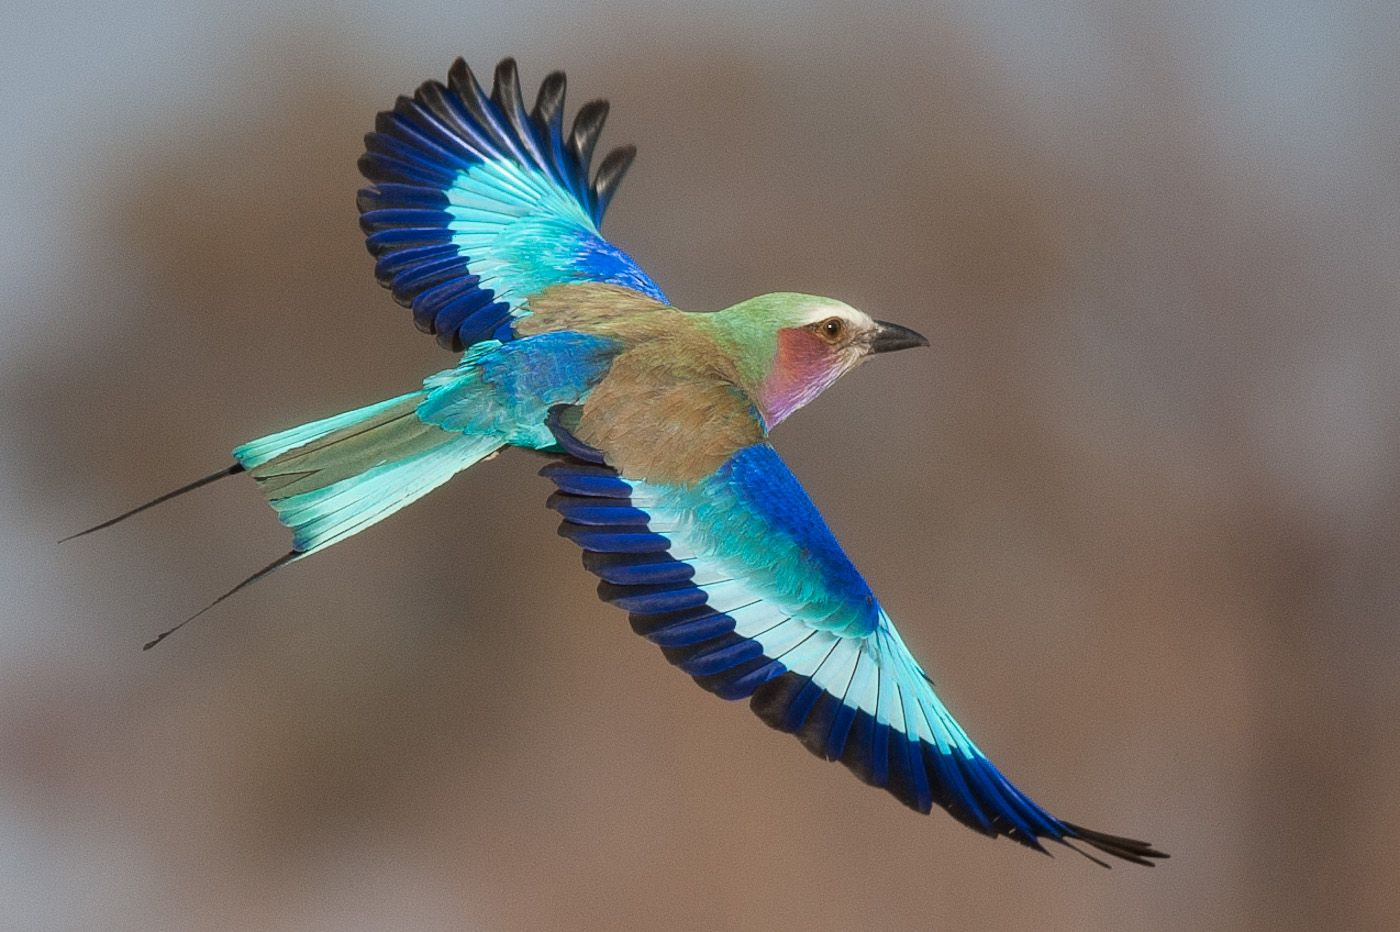 colorful bird in flight - Google Search | birds ...